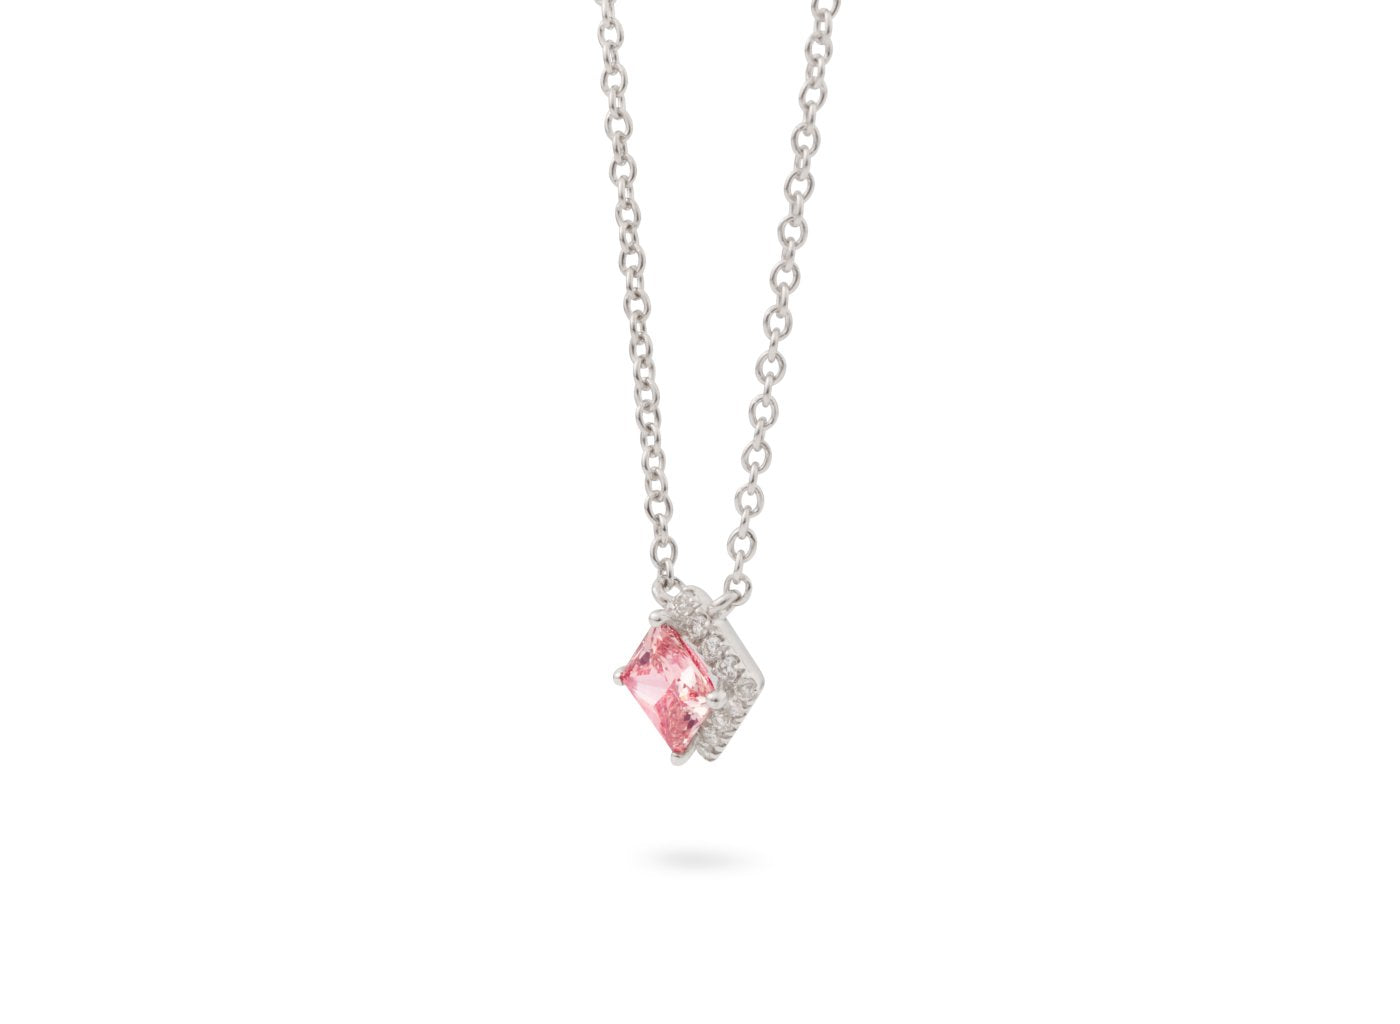 Side view of Princess Halo 1/2 carat pendant with pink and white diamonds